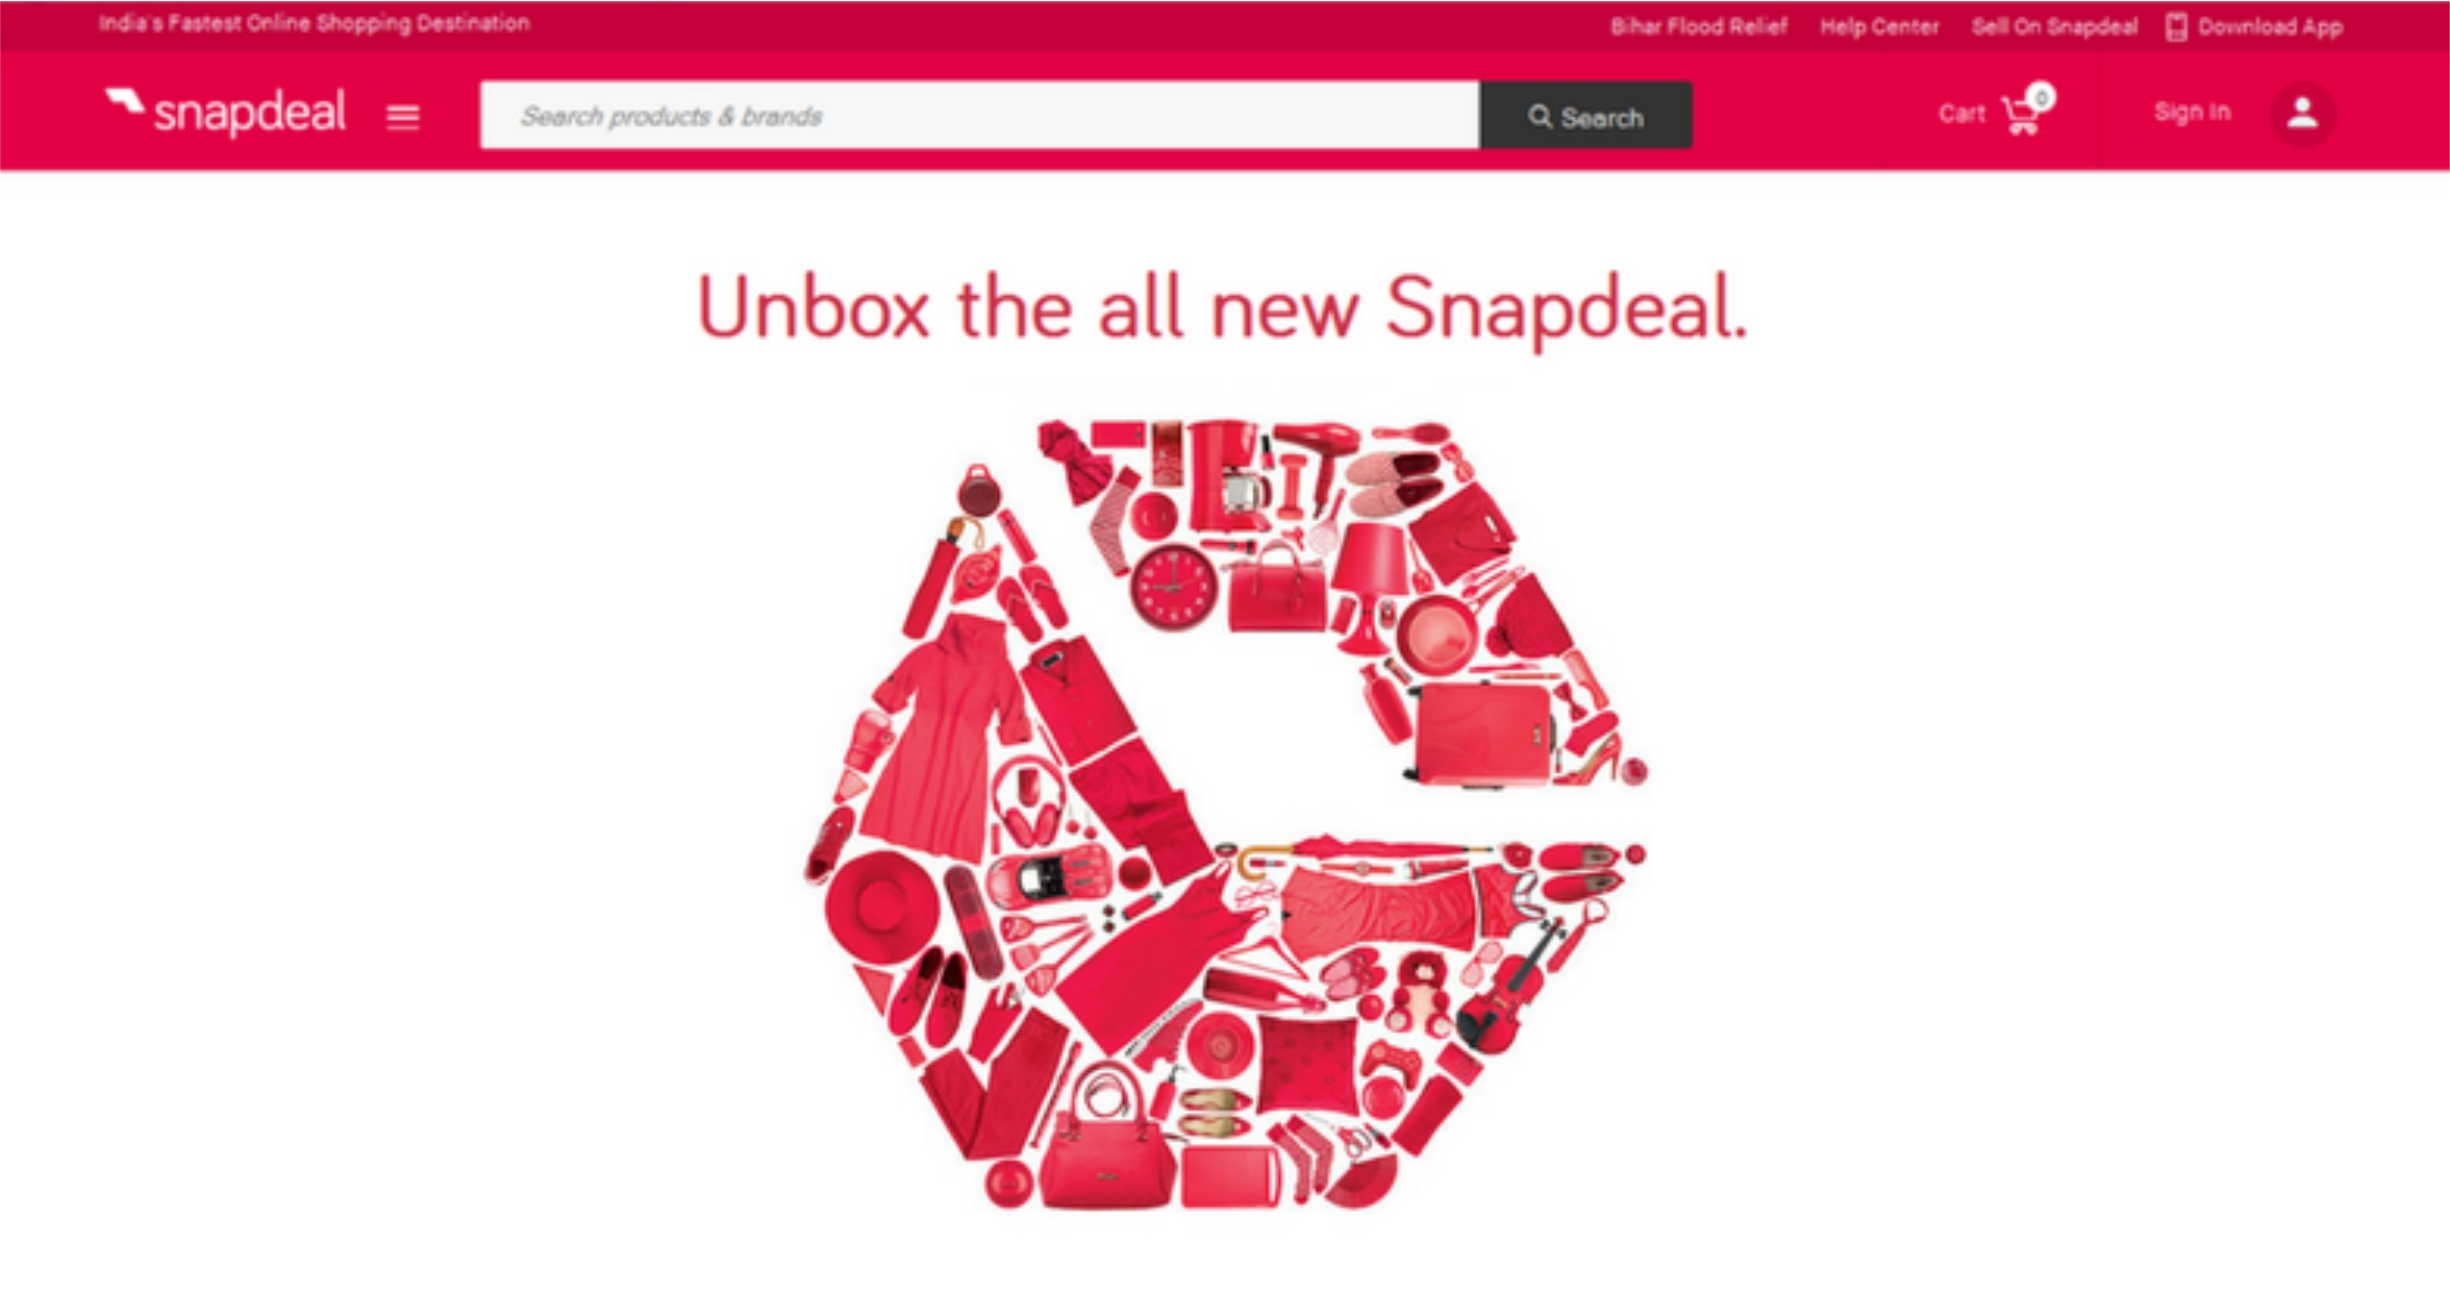 Snapdeal goes for a branding makeover to stay put in competition